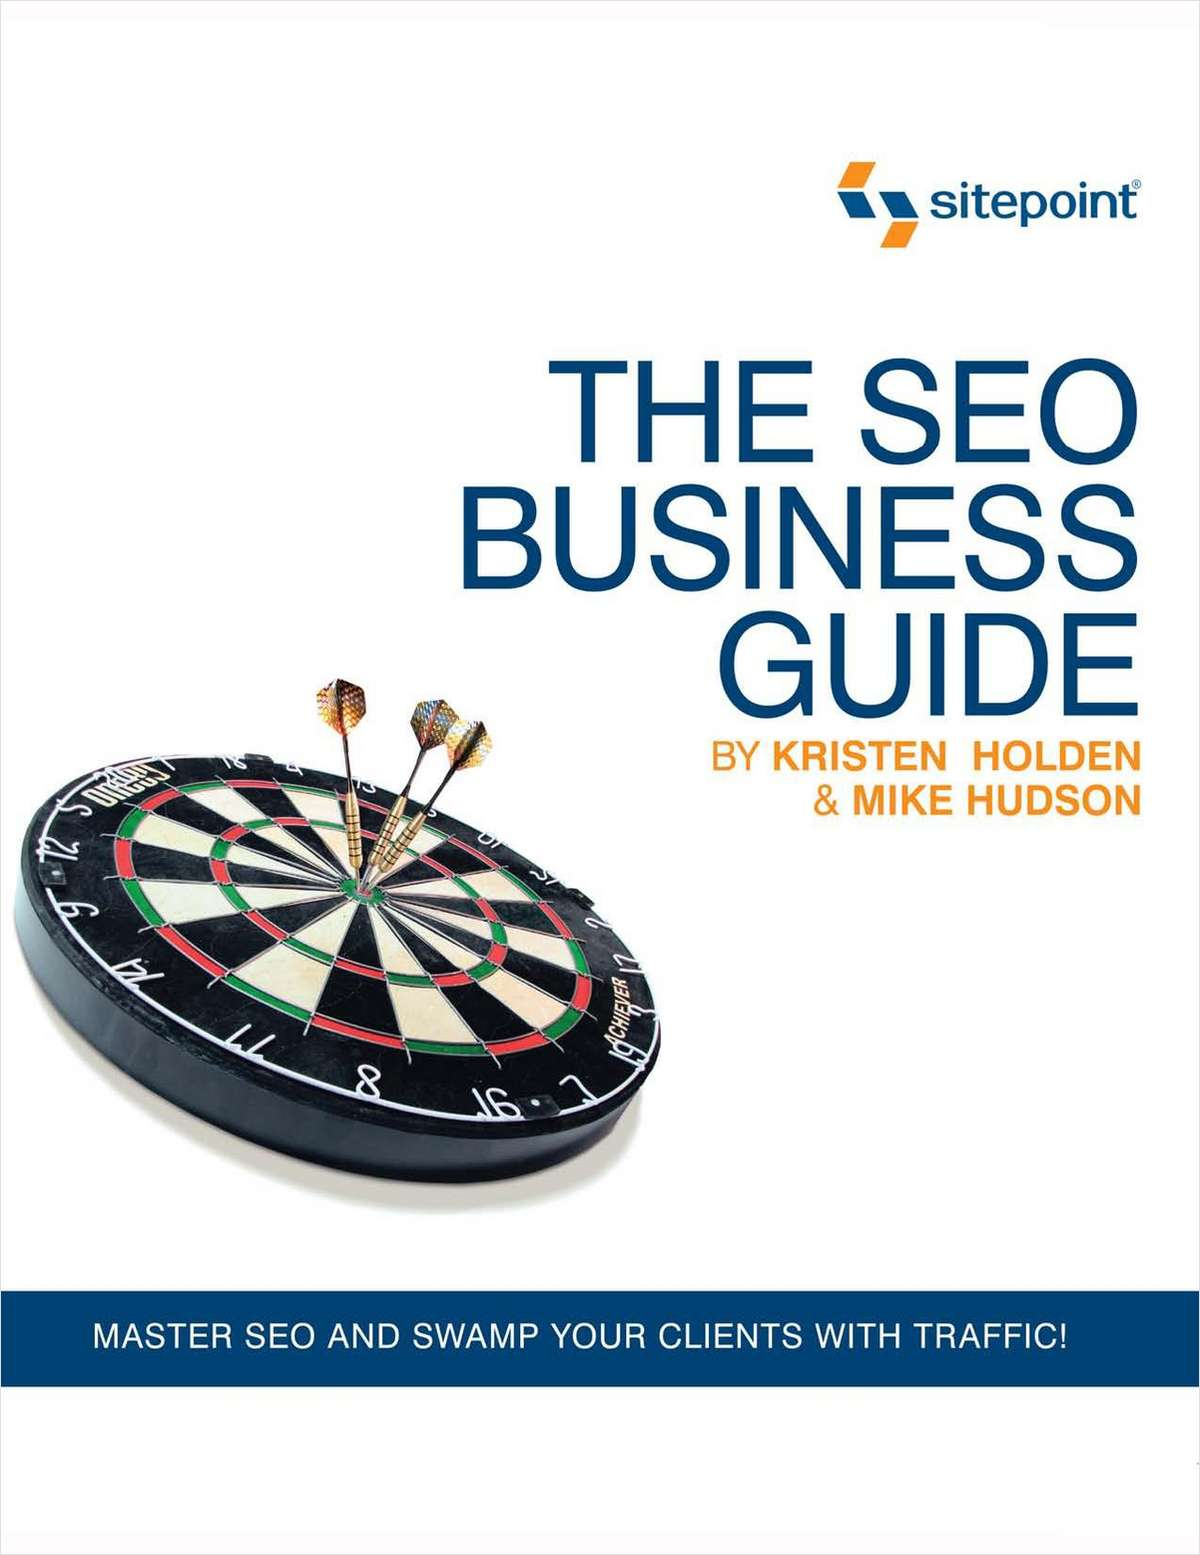 The SEO Business Guide - Free 61 Page Preview